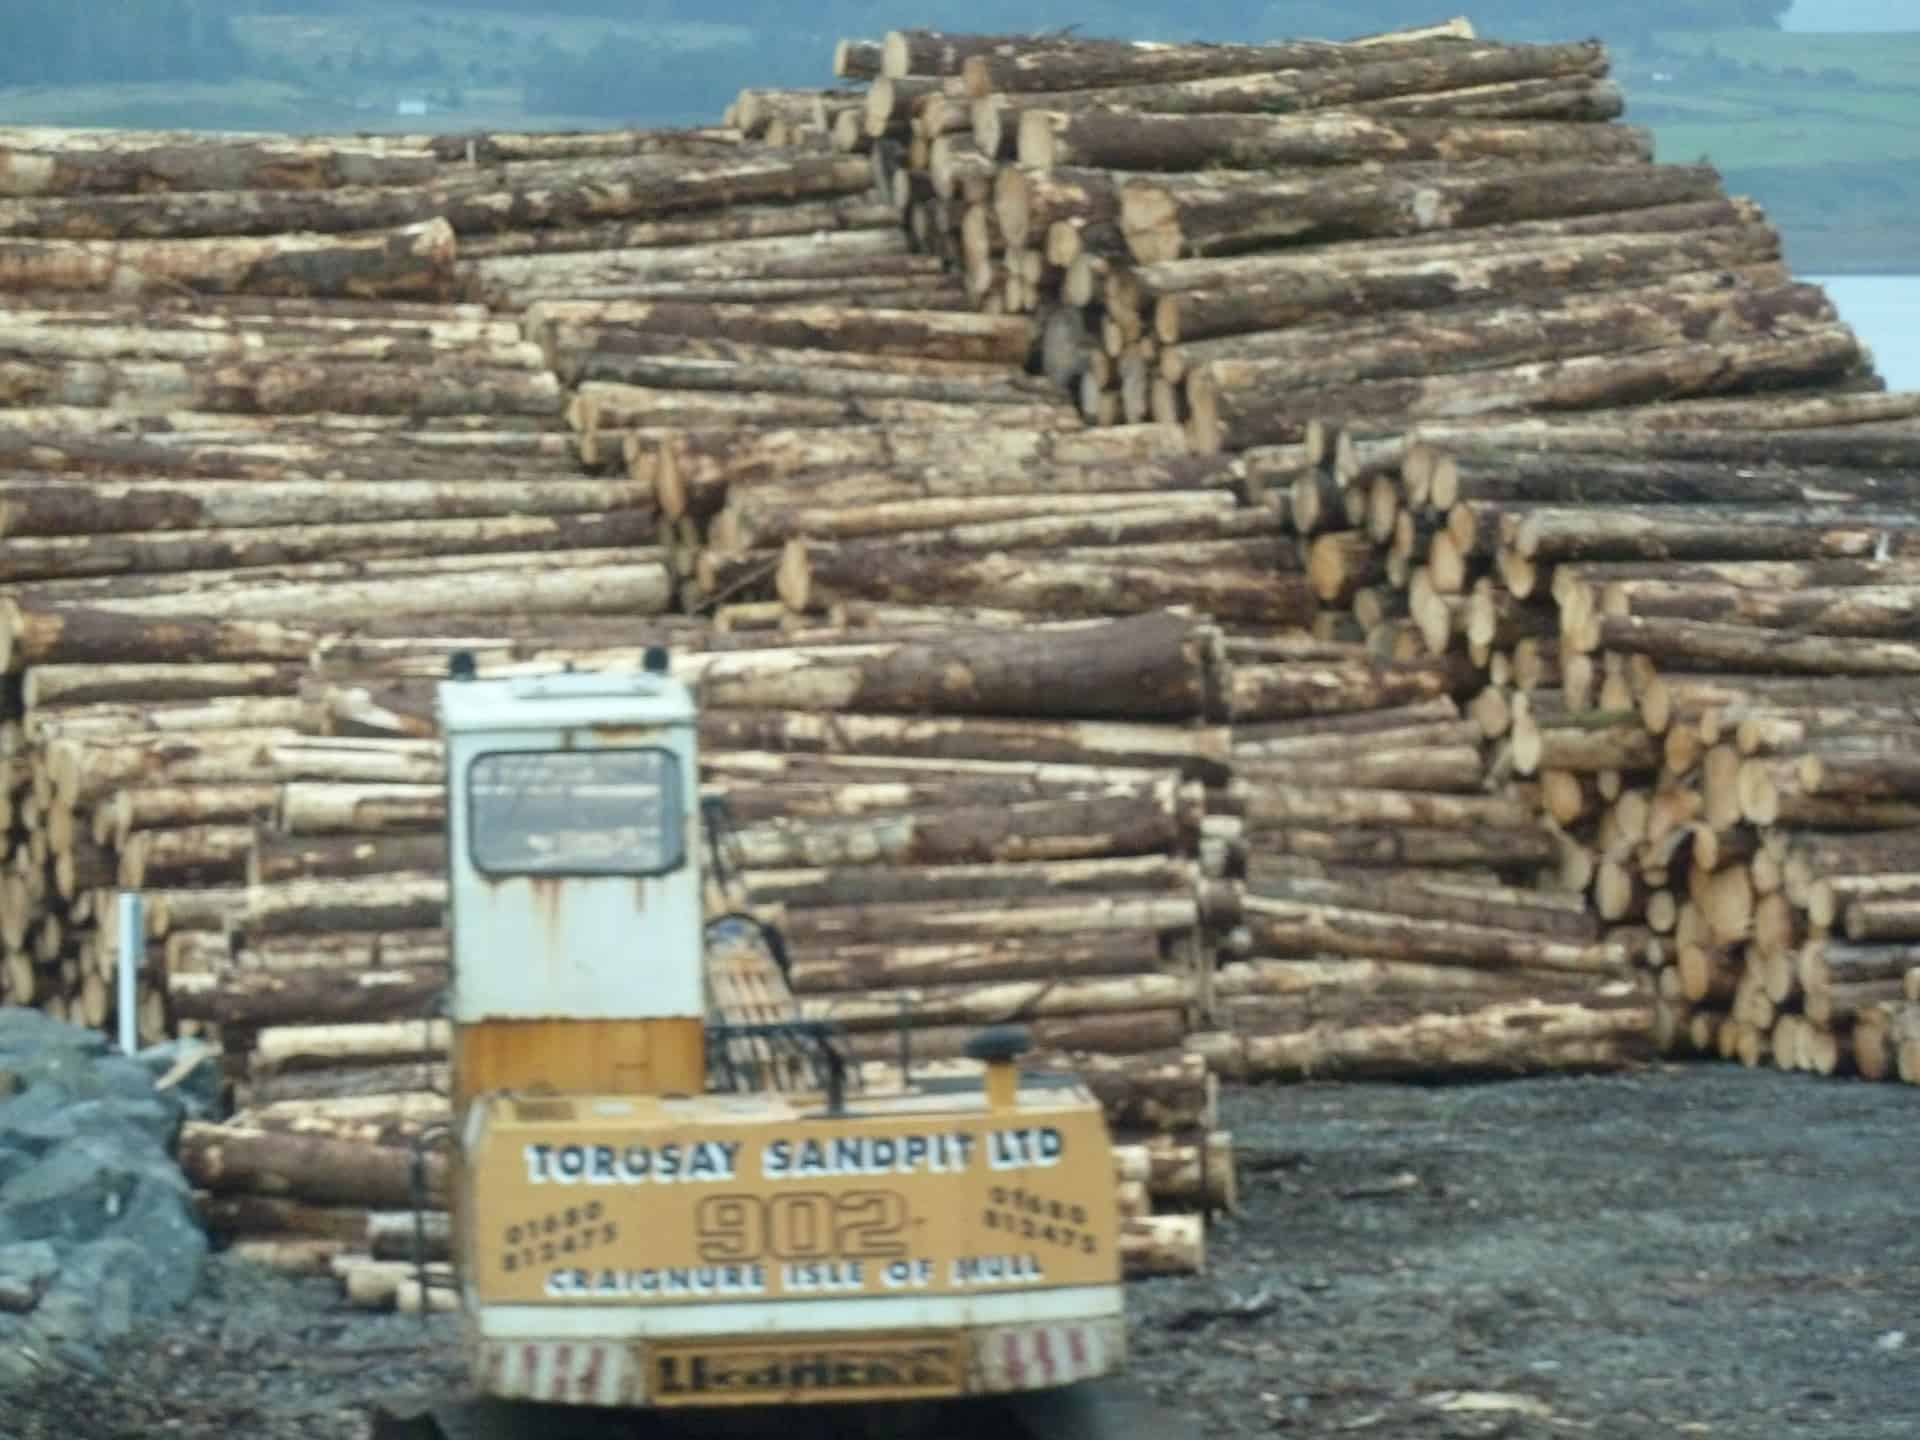 Log deck to be loaded on a barge.